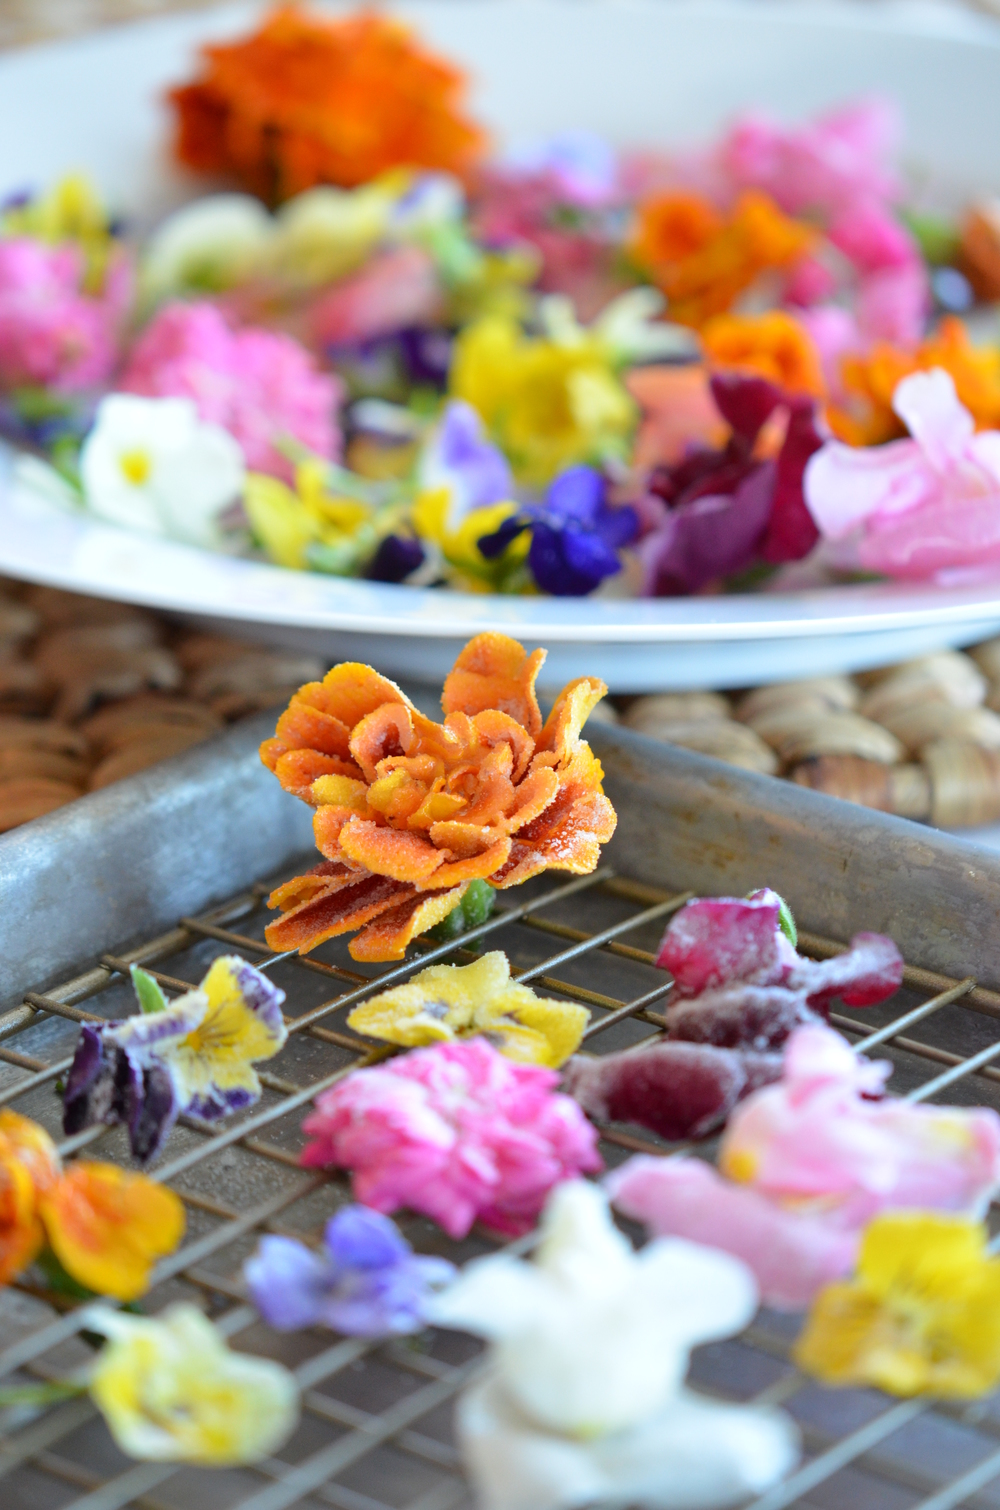 Edible Candied Flowers from  my cookbook    Entertaining with Love  !